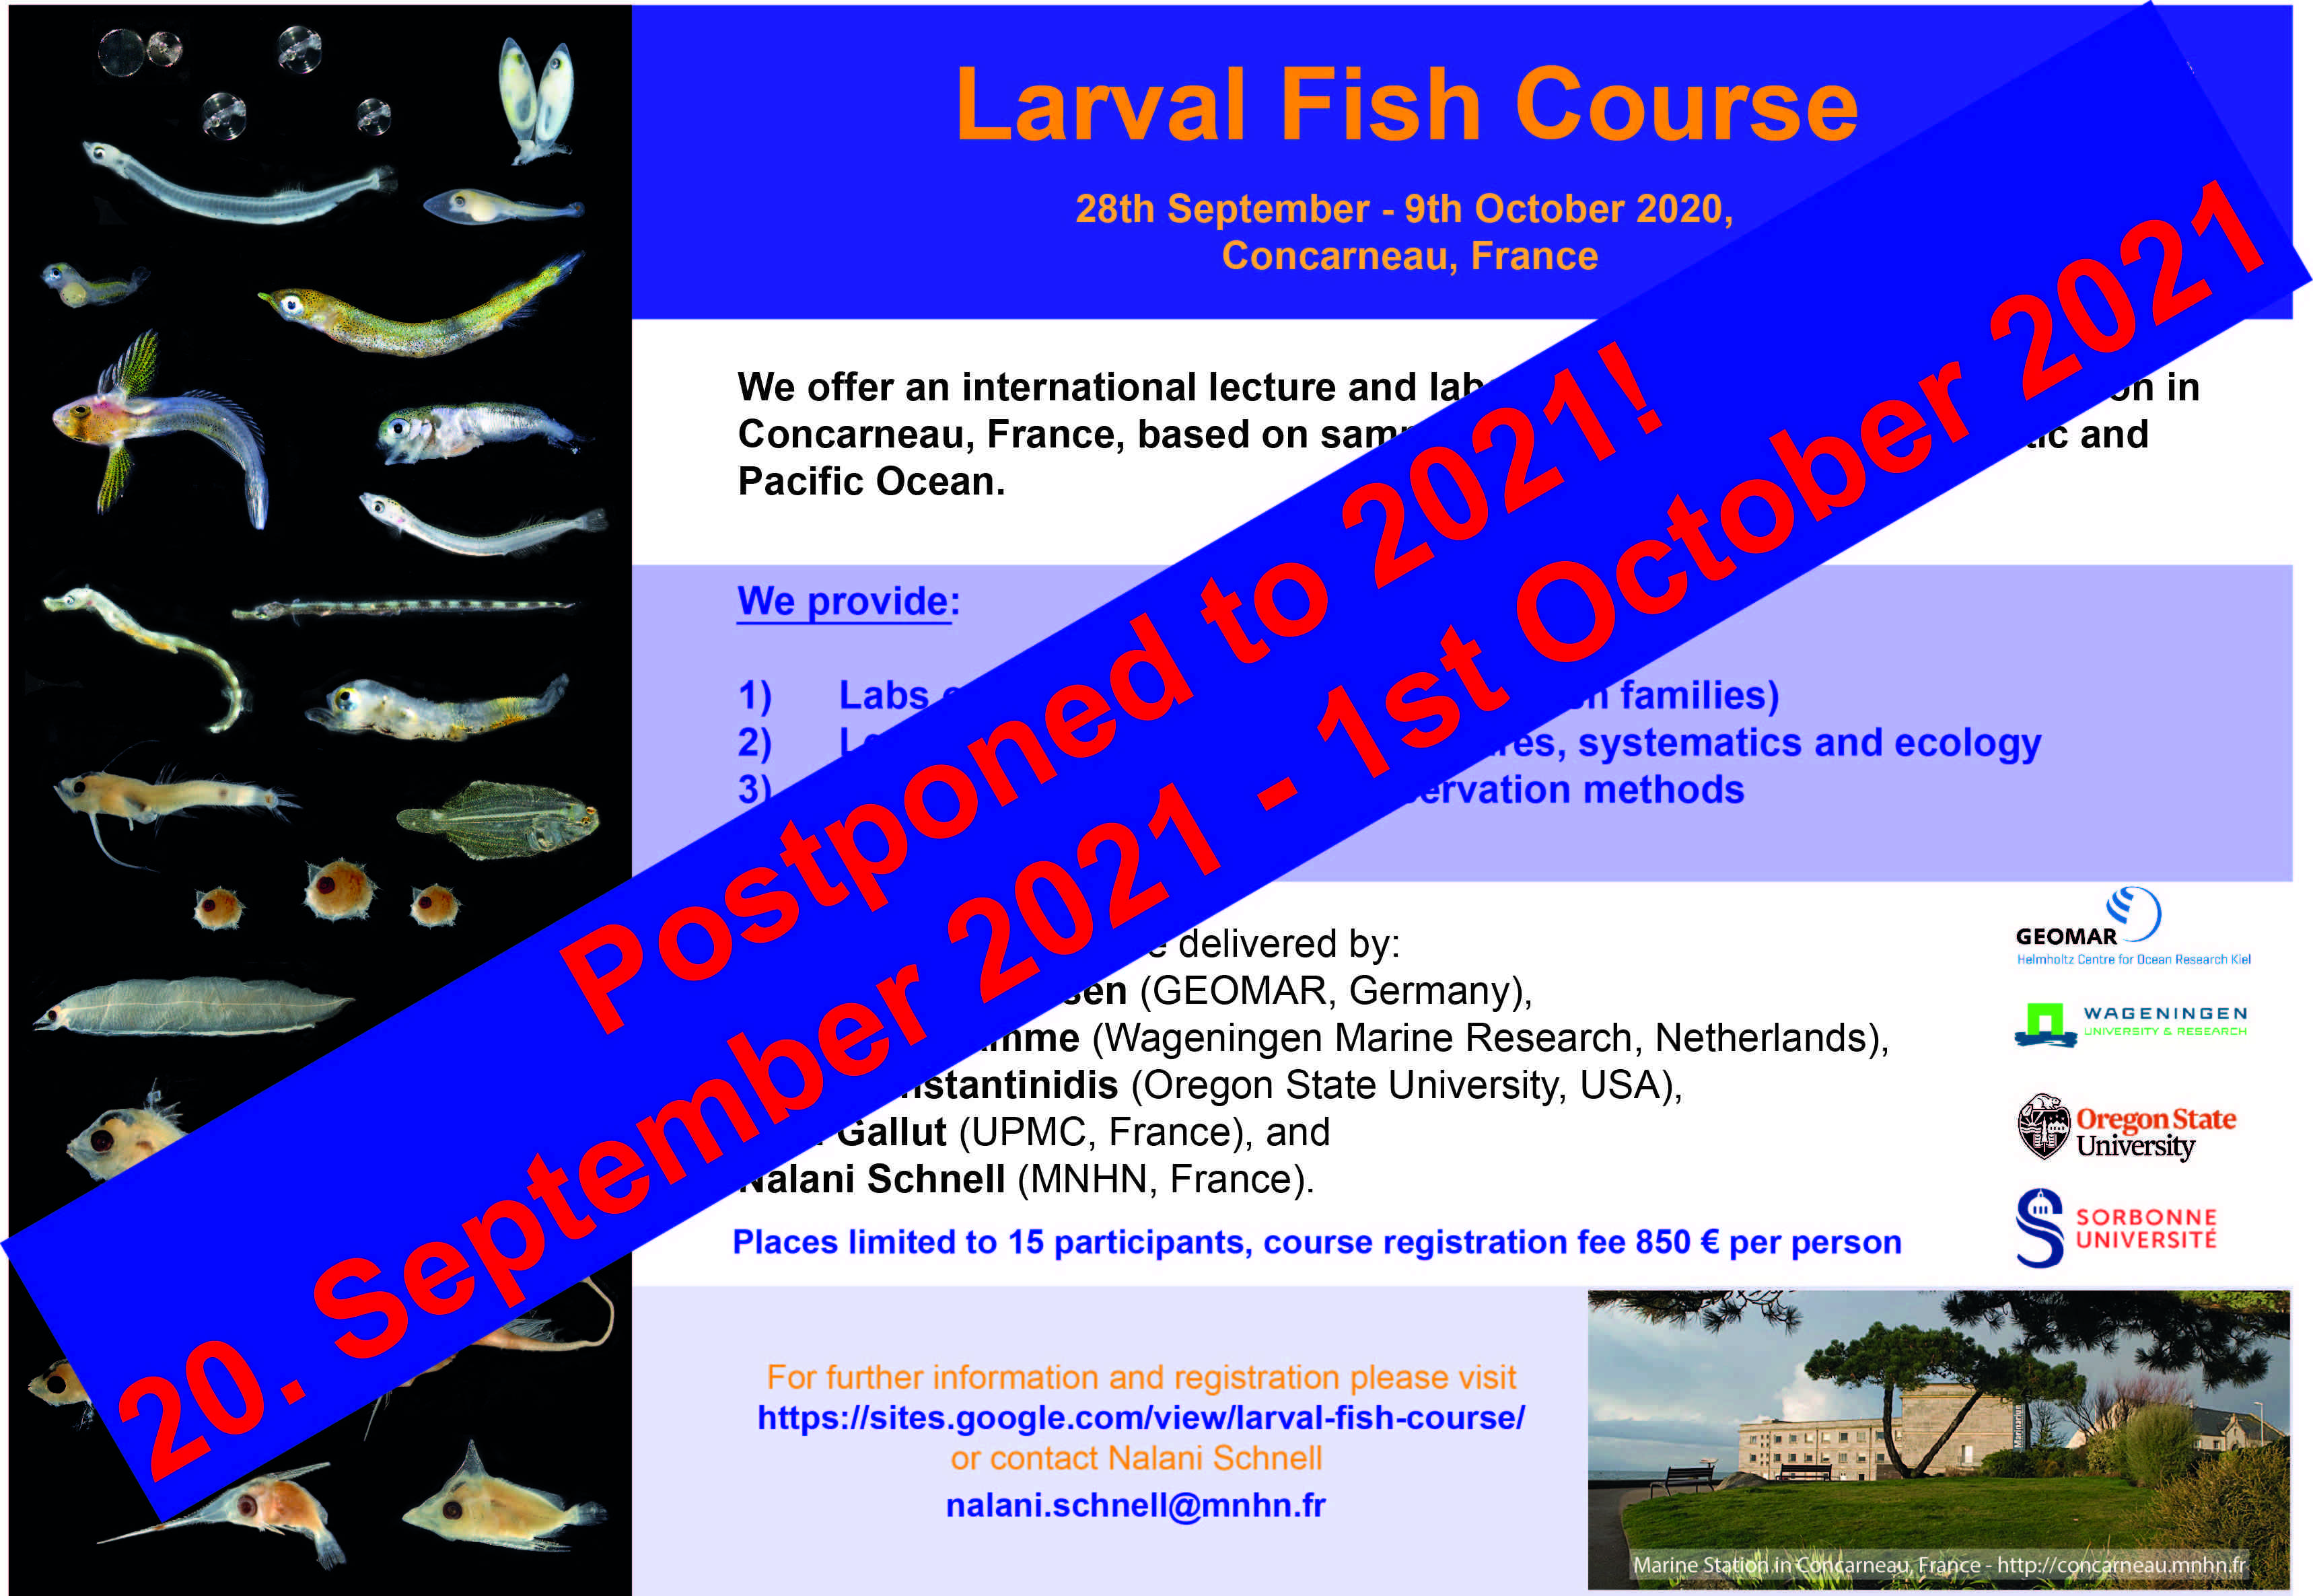 larval fish course concarneau postponed to 2021